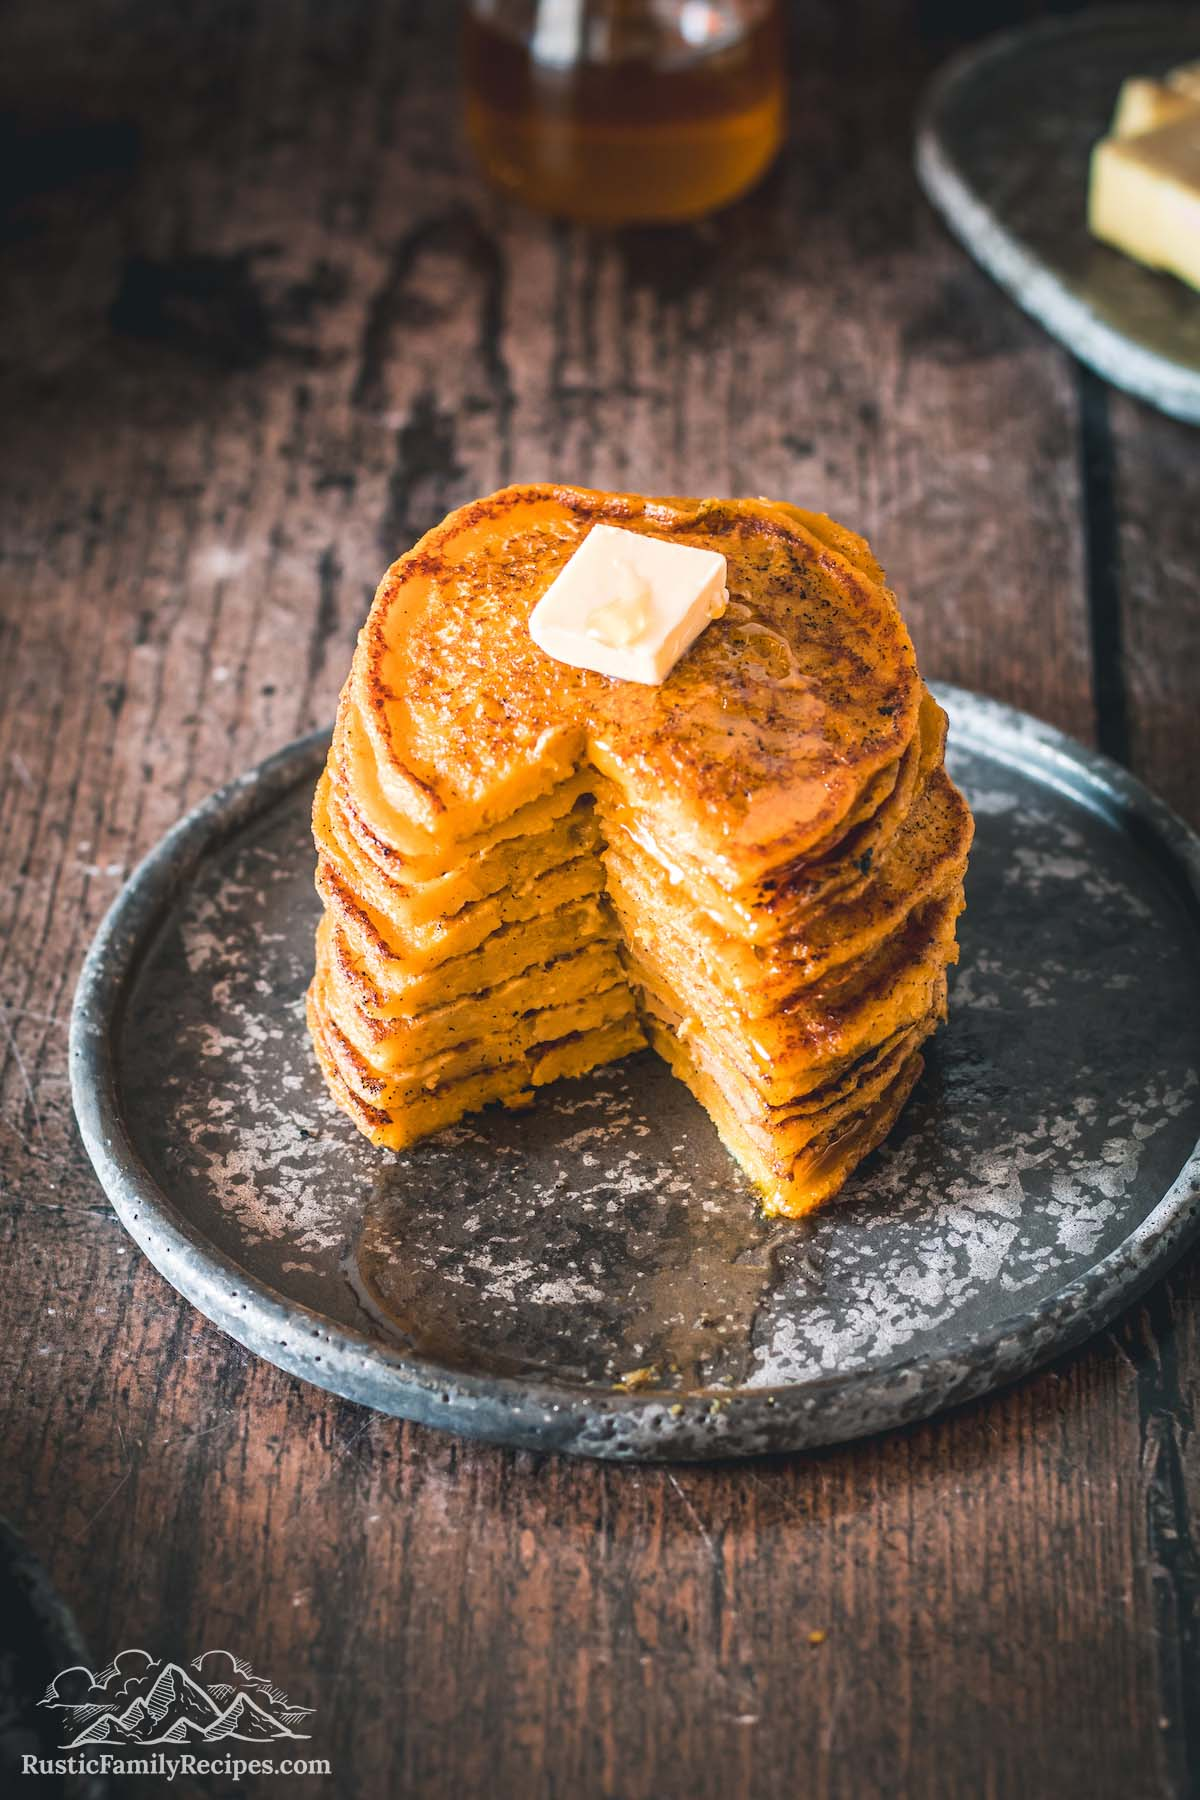 Stack of pumpkin corn cakes with a slice taken out so you can see the inside.